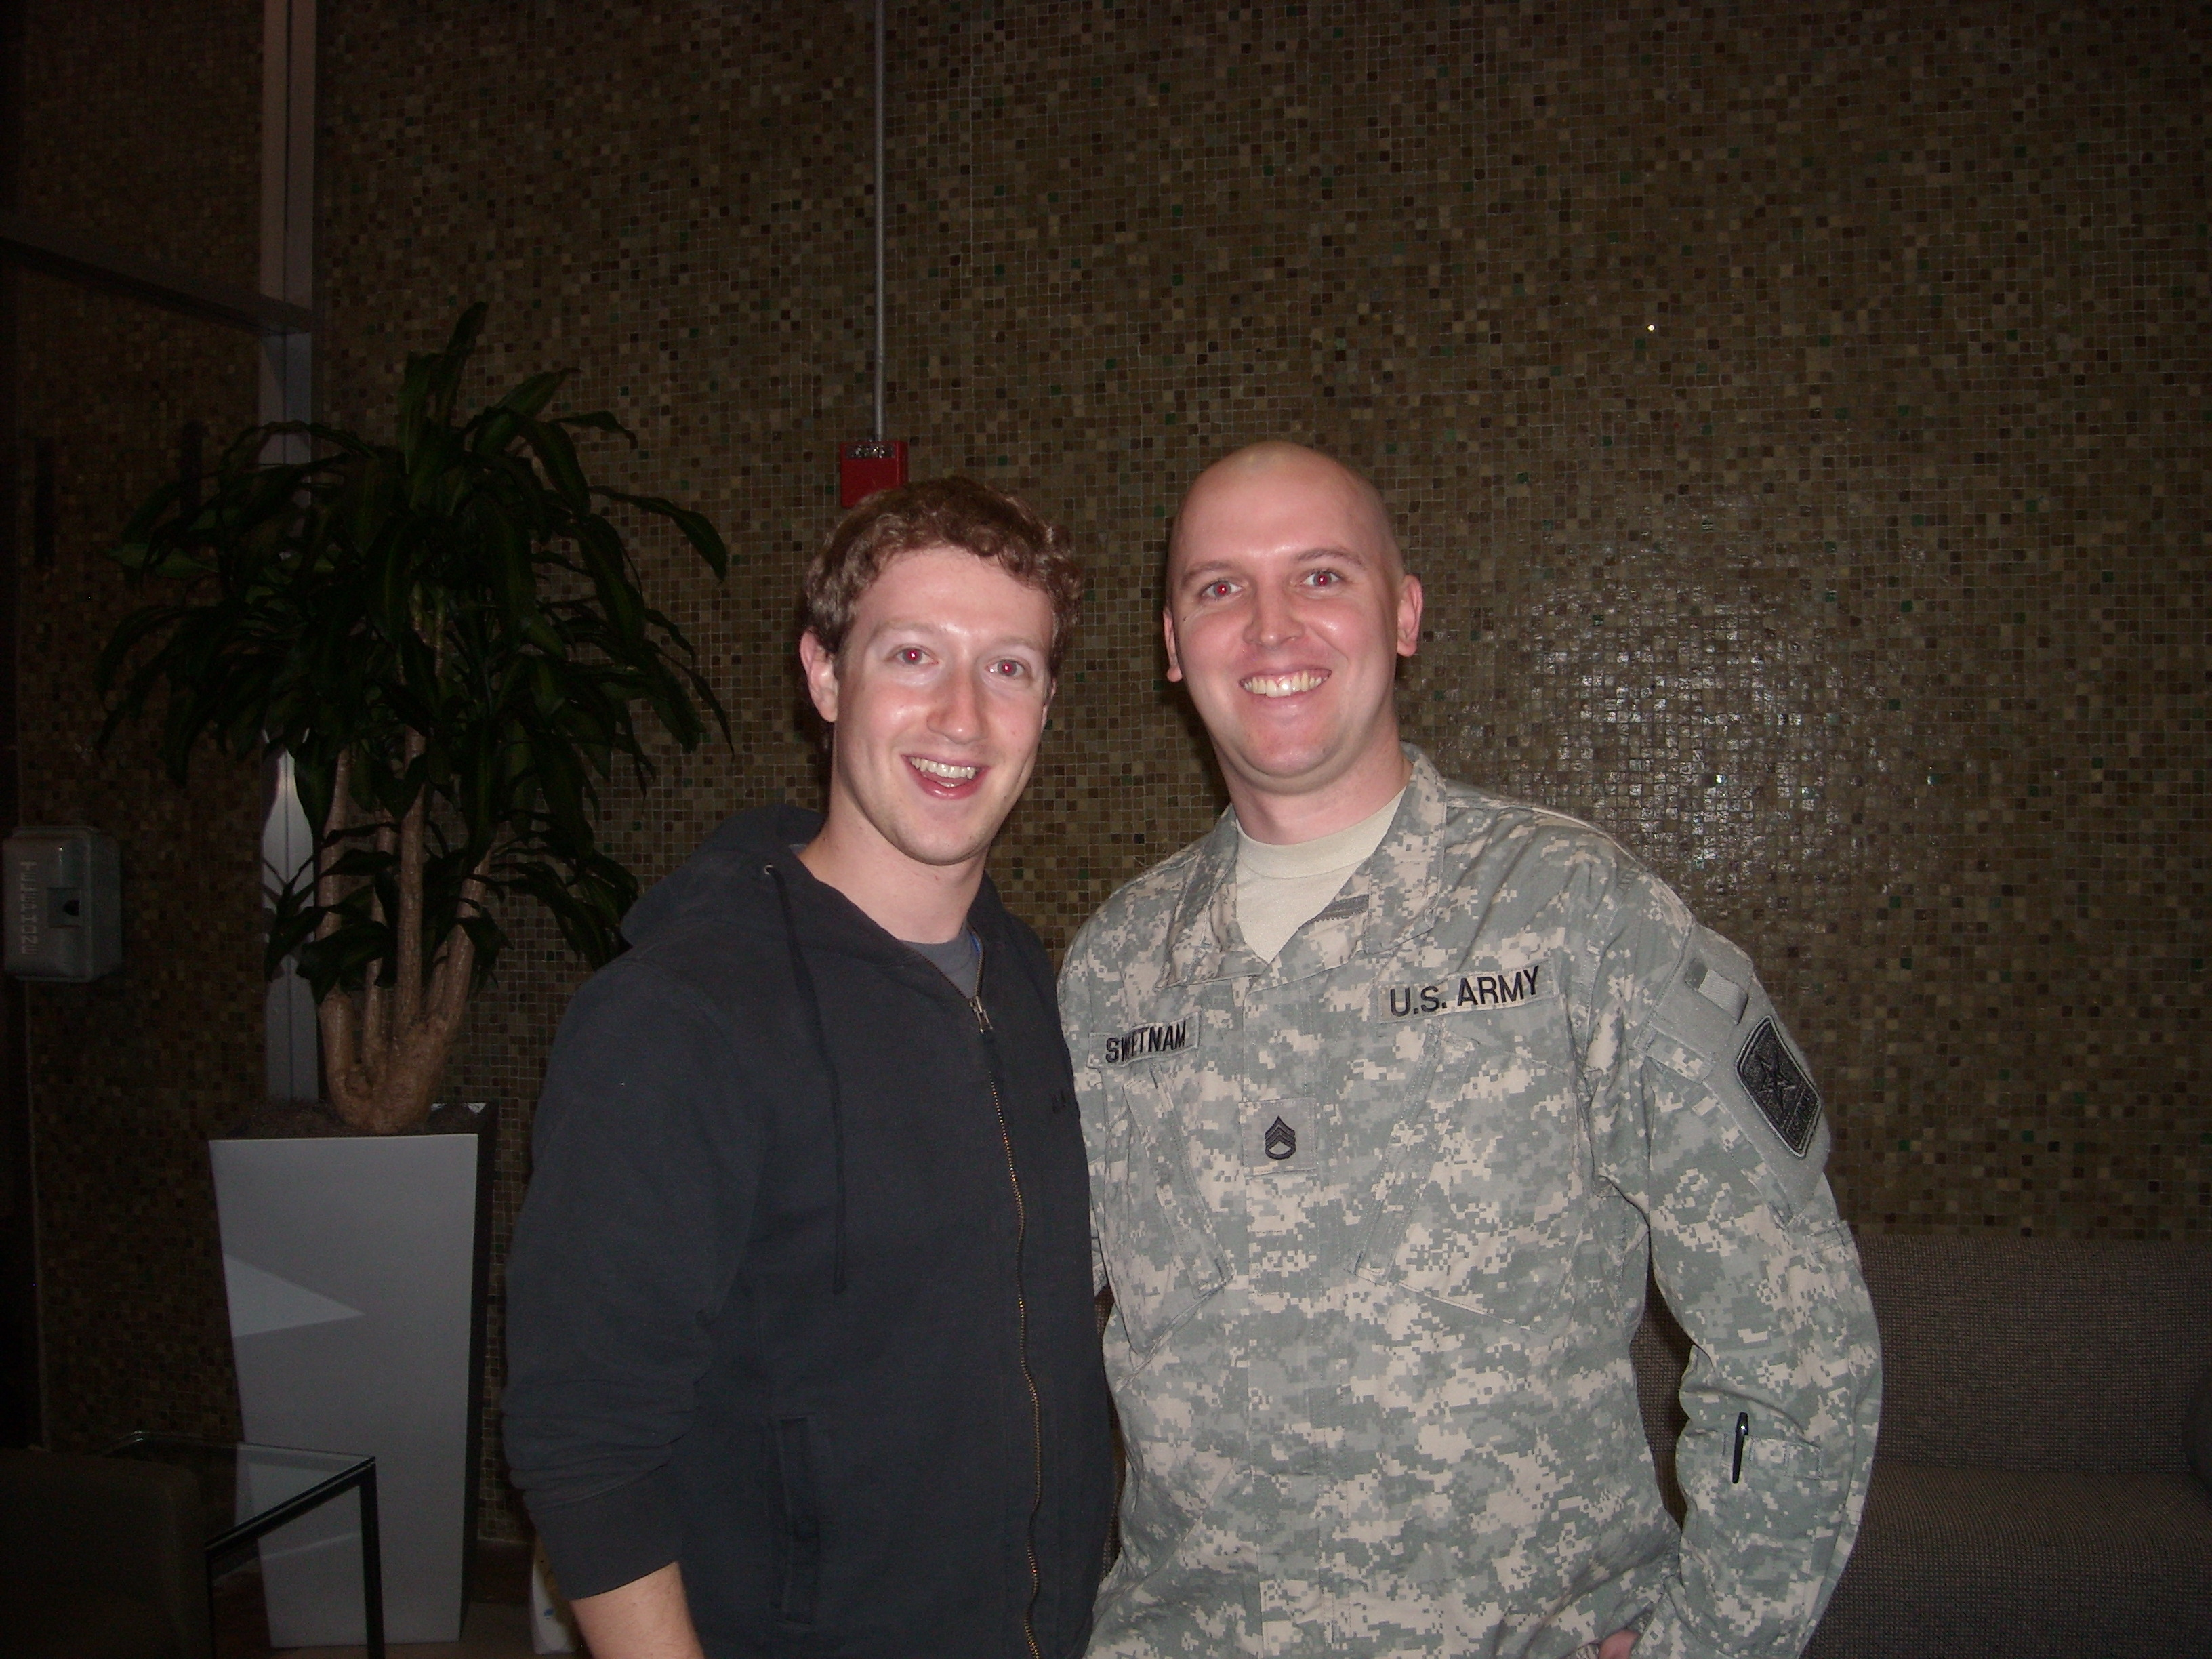 Zuckerberg With Soldier